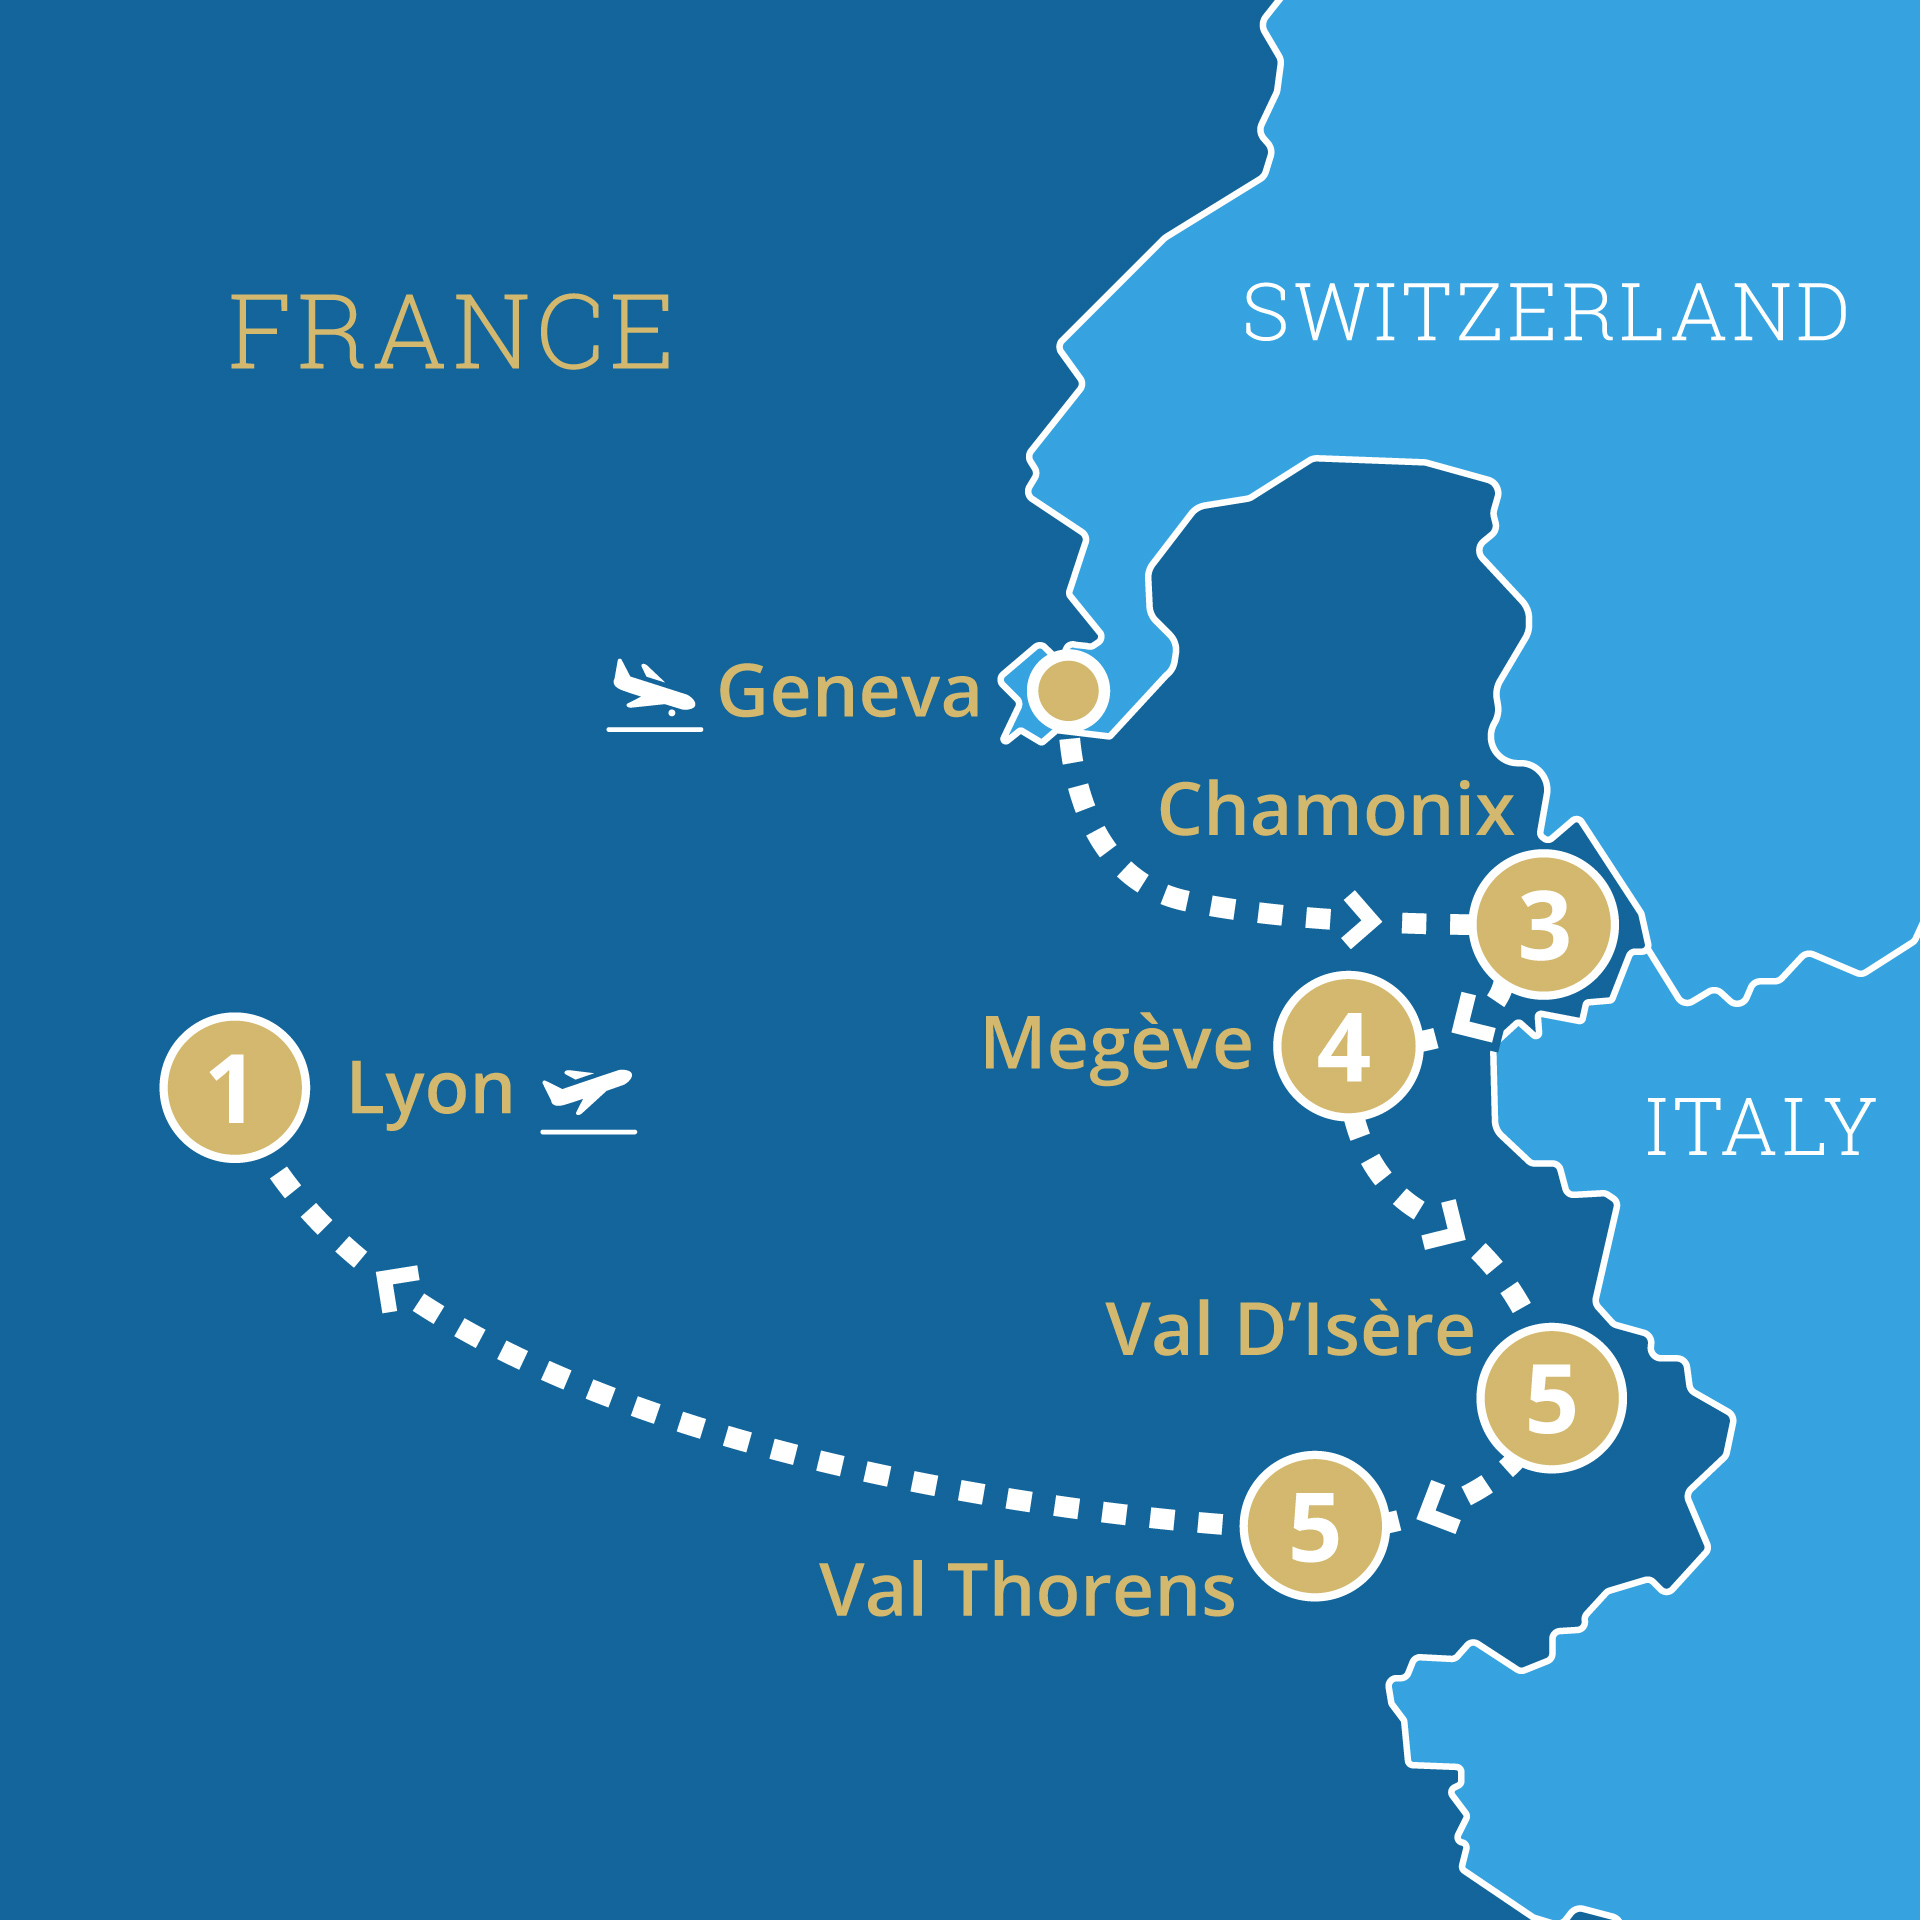 Itinerary in France